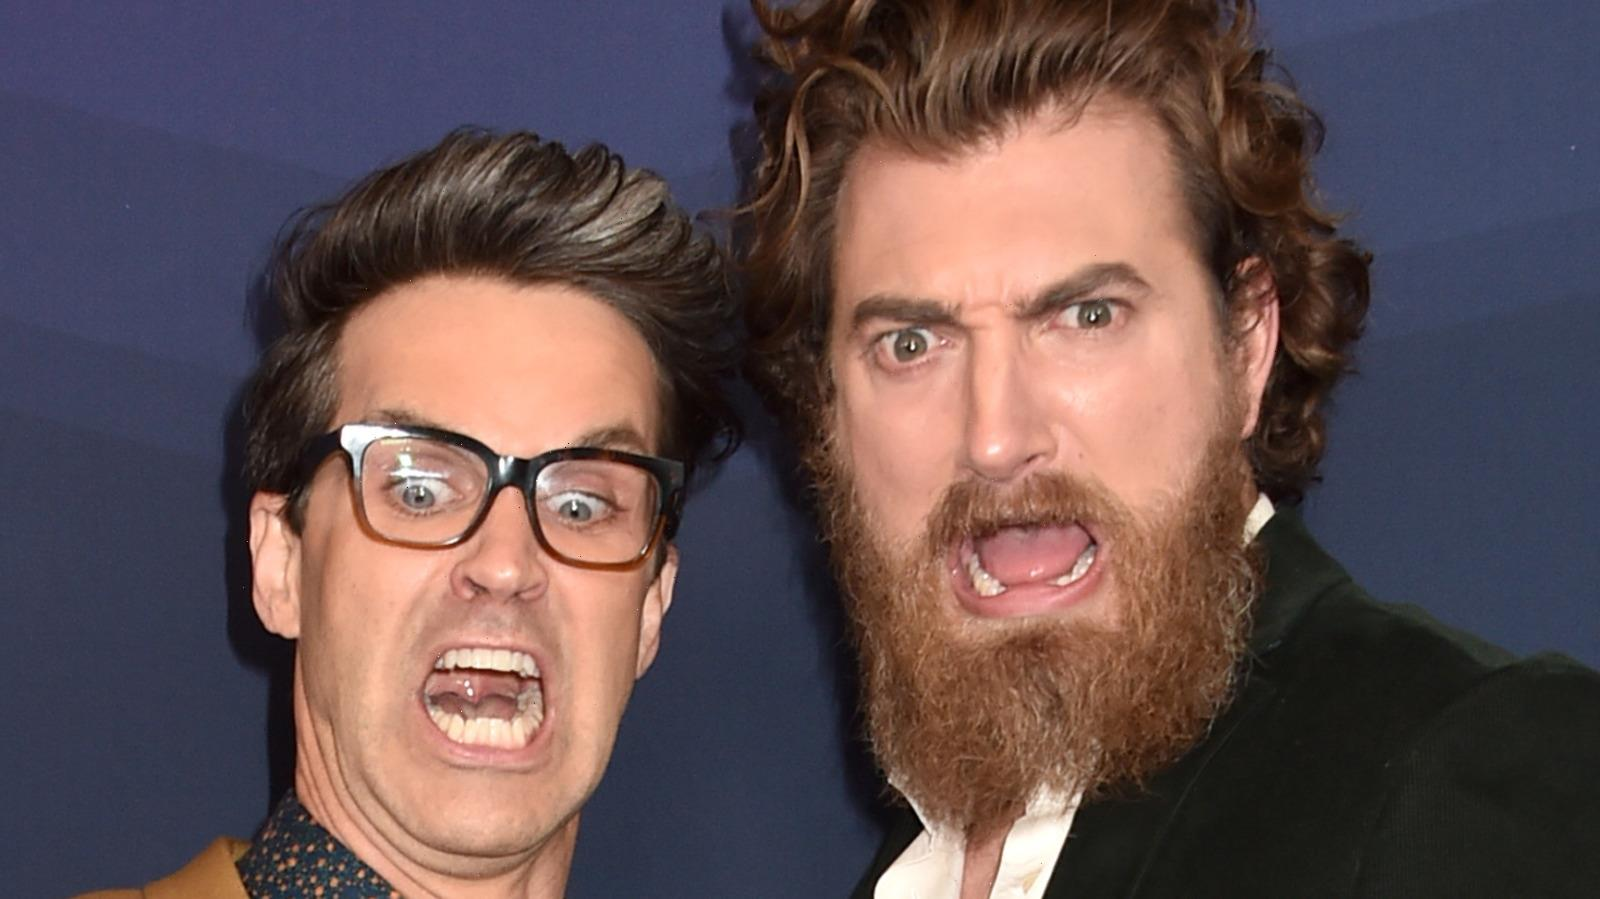 Inside The Real-Life Friendship Of Good Mythical Morning's Rhett And Link